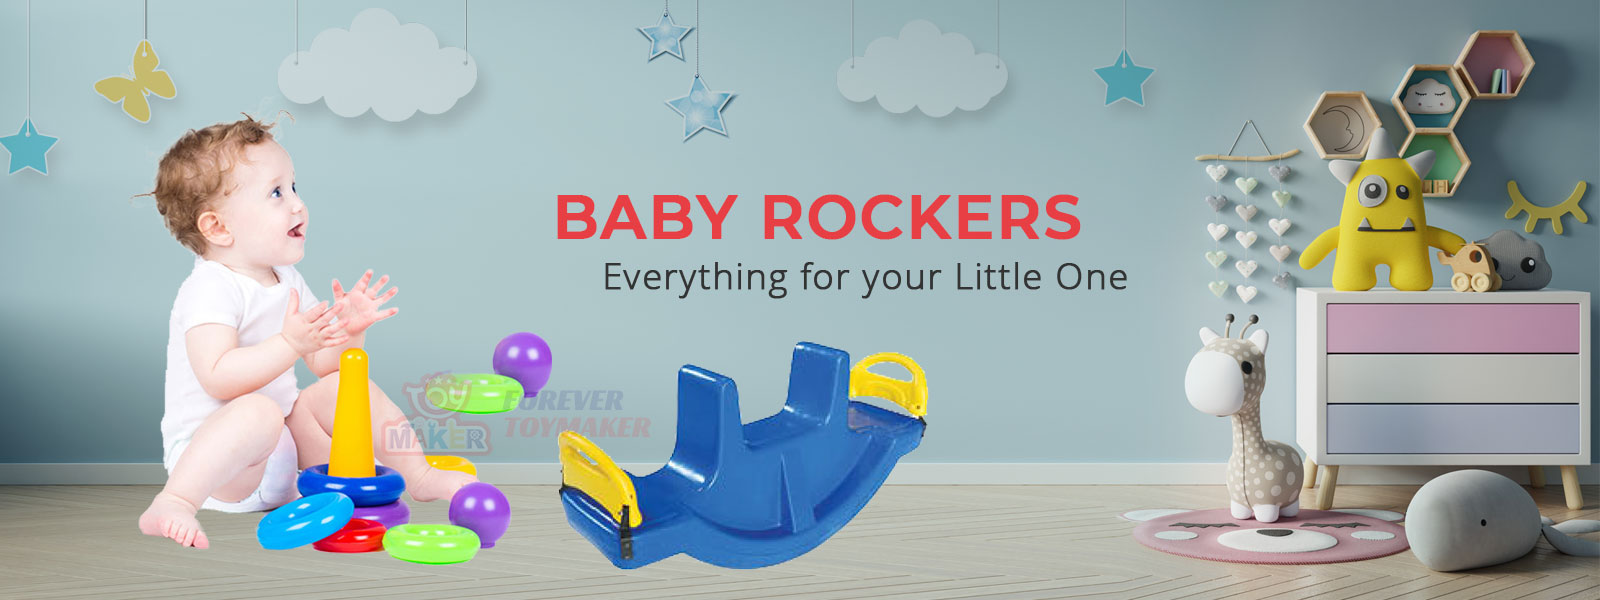 Baby Rockers Manufacturers in Agra